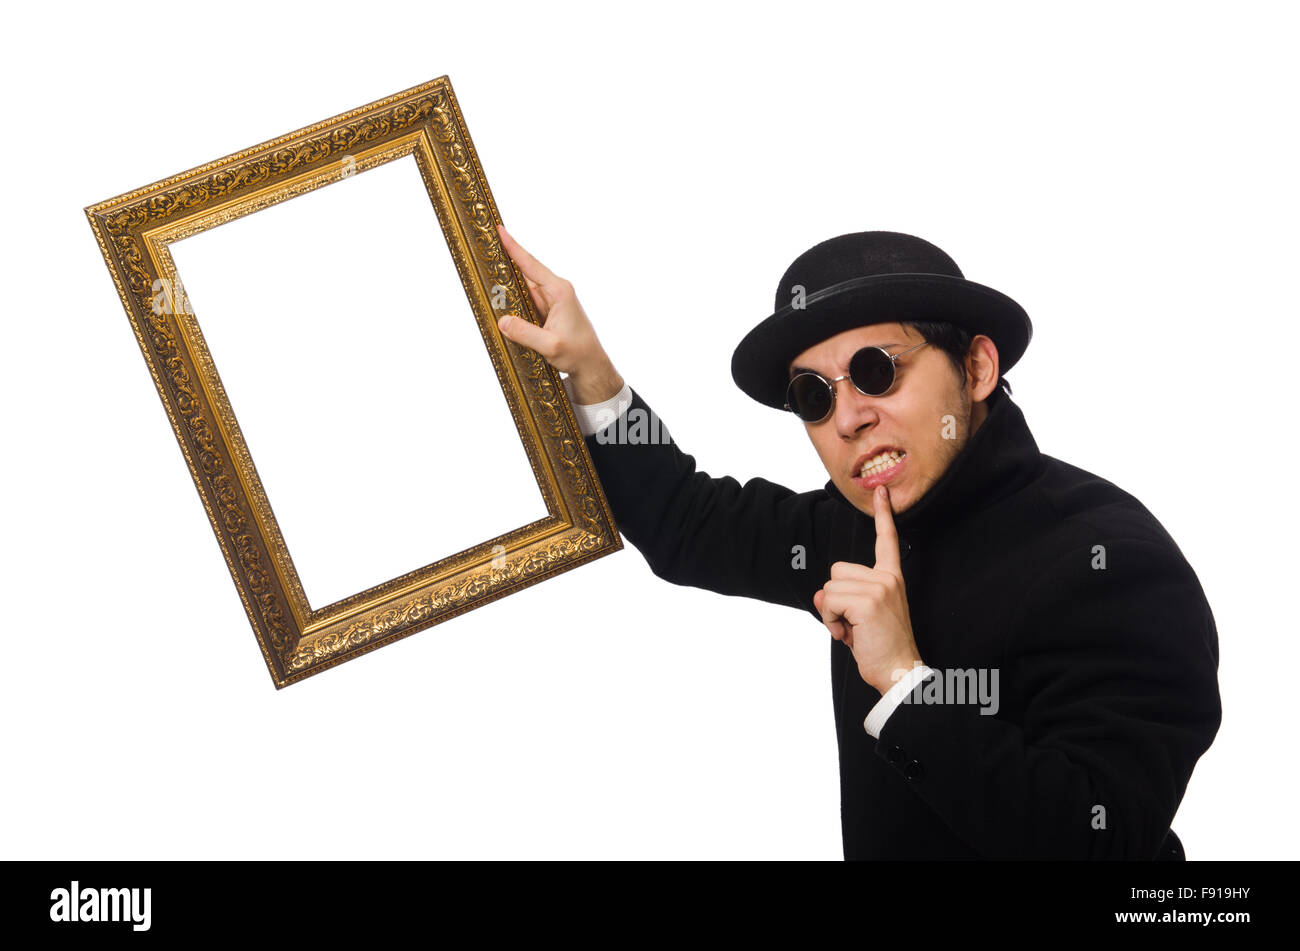 Young man holding frame isolated on white Stock Photo: 91613255 - Alamy